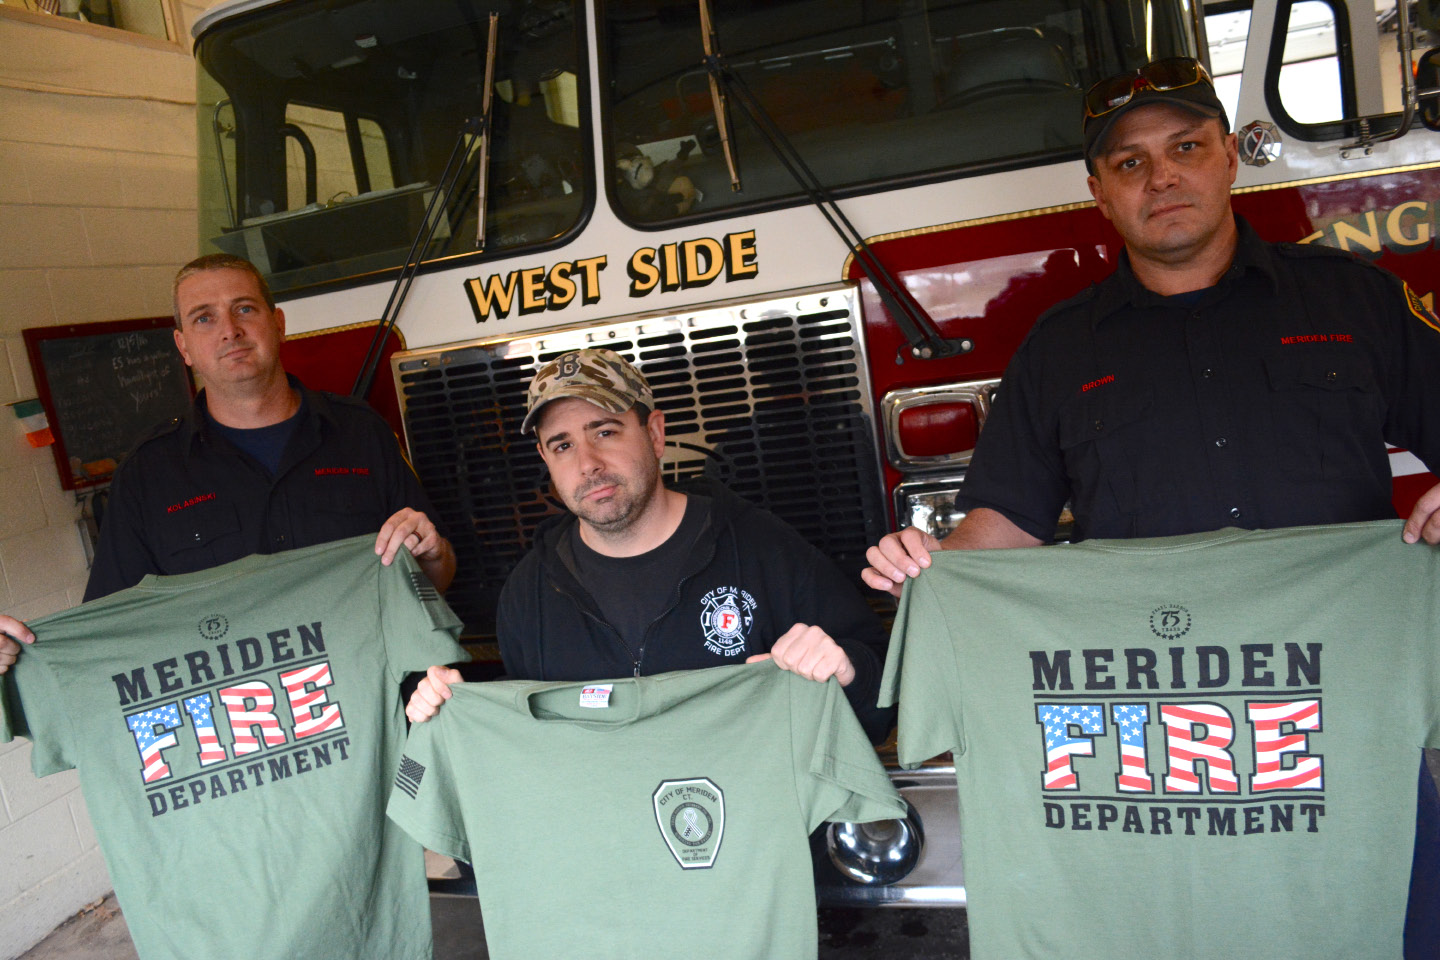 Meriden firefighters Eric Kolasinski, Kris Leahy and Ken Brown hold up Meriden Fire Department Pearl Harbor T-shirts at Station 1 on Tuesday.| Bryan Lipiner, Record-Journal